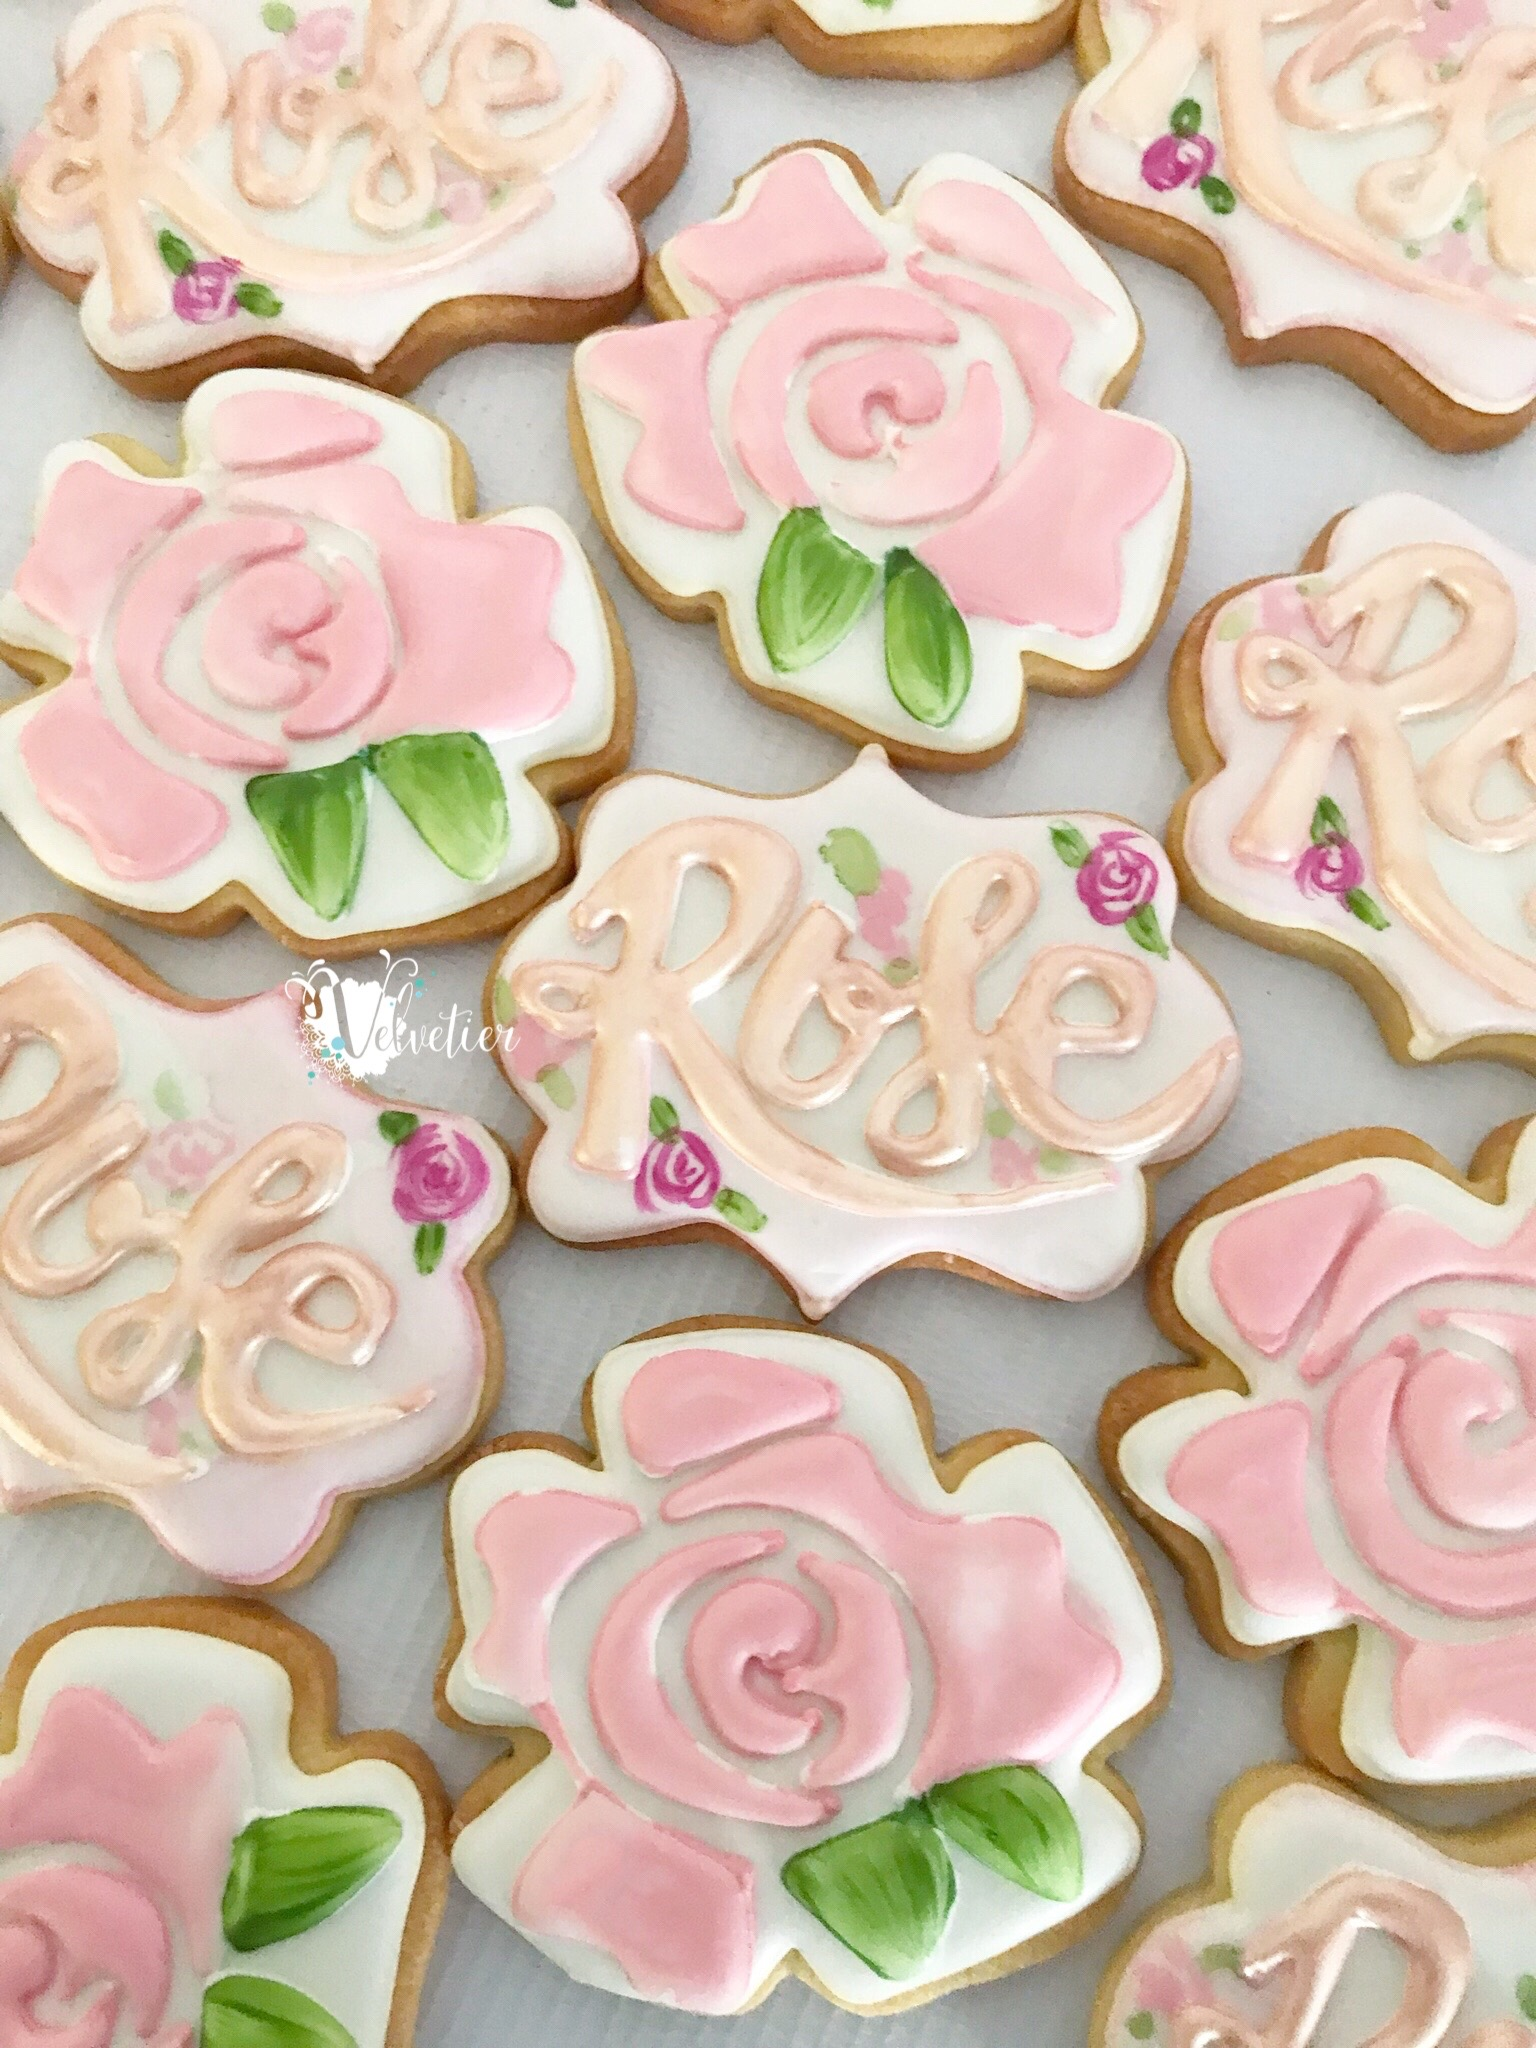 shades of pink rose first birthday cookies by velvetier brisbane 2